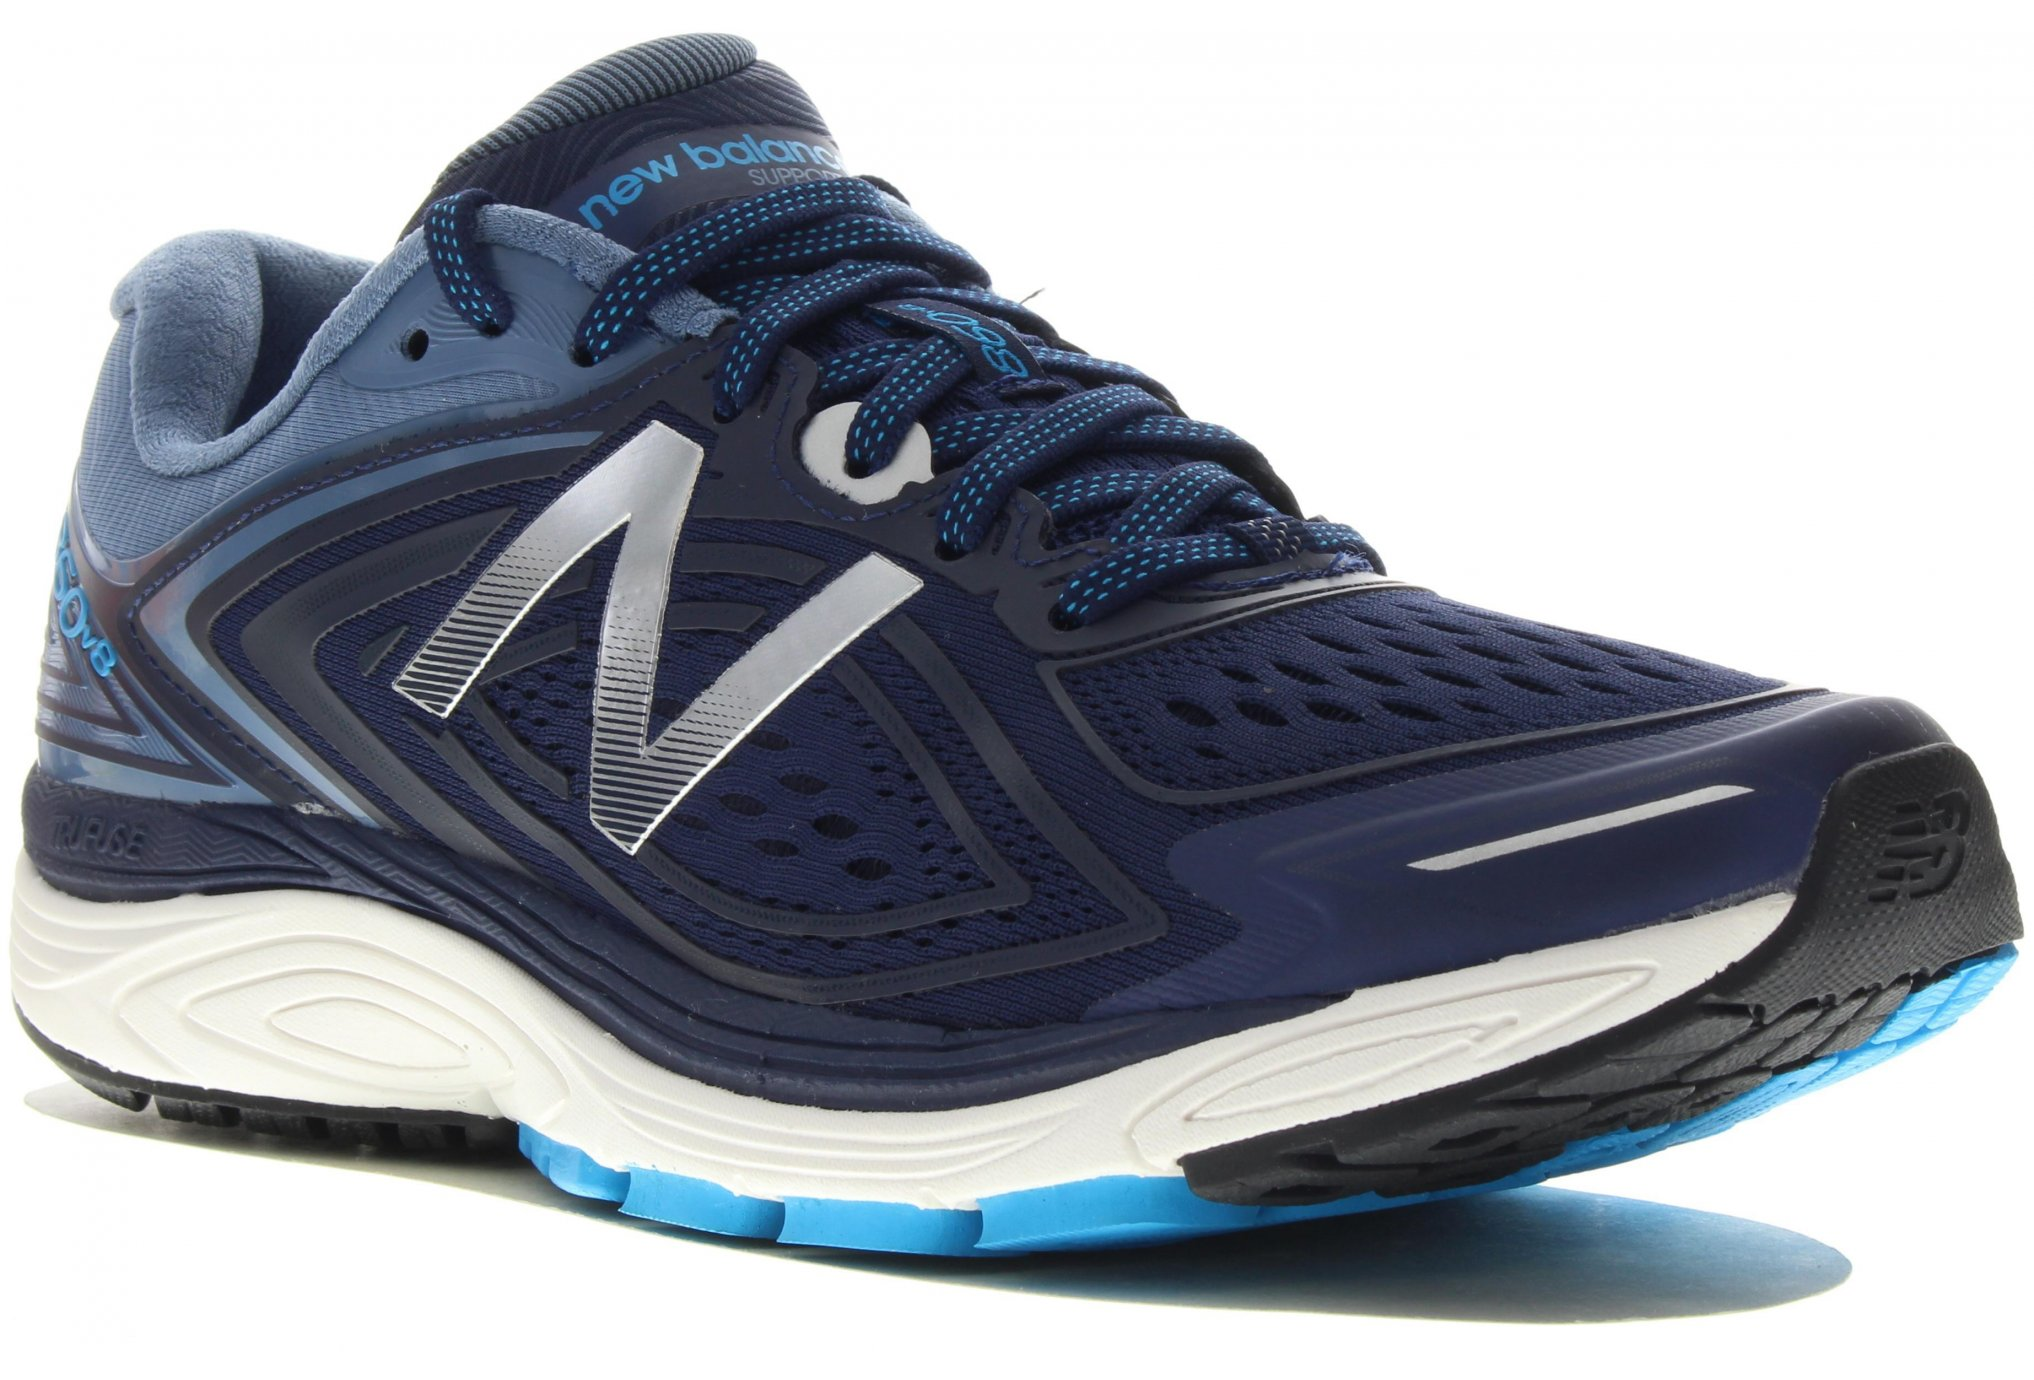 New Balance M 860 V8 - D Chaussures homme